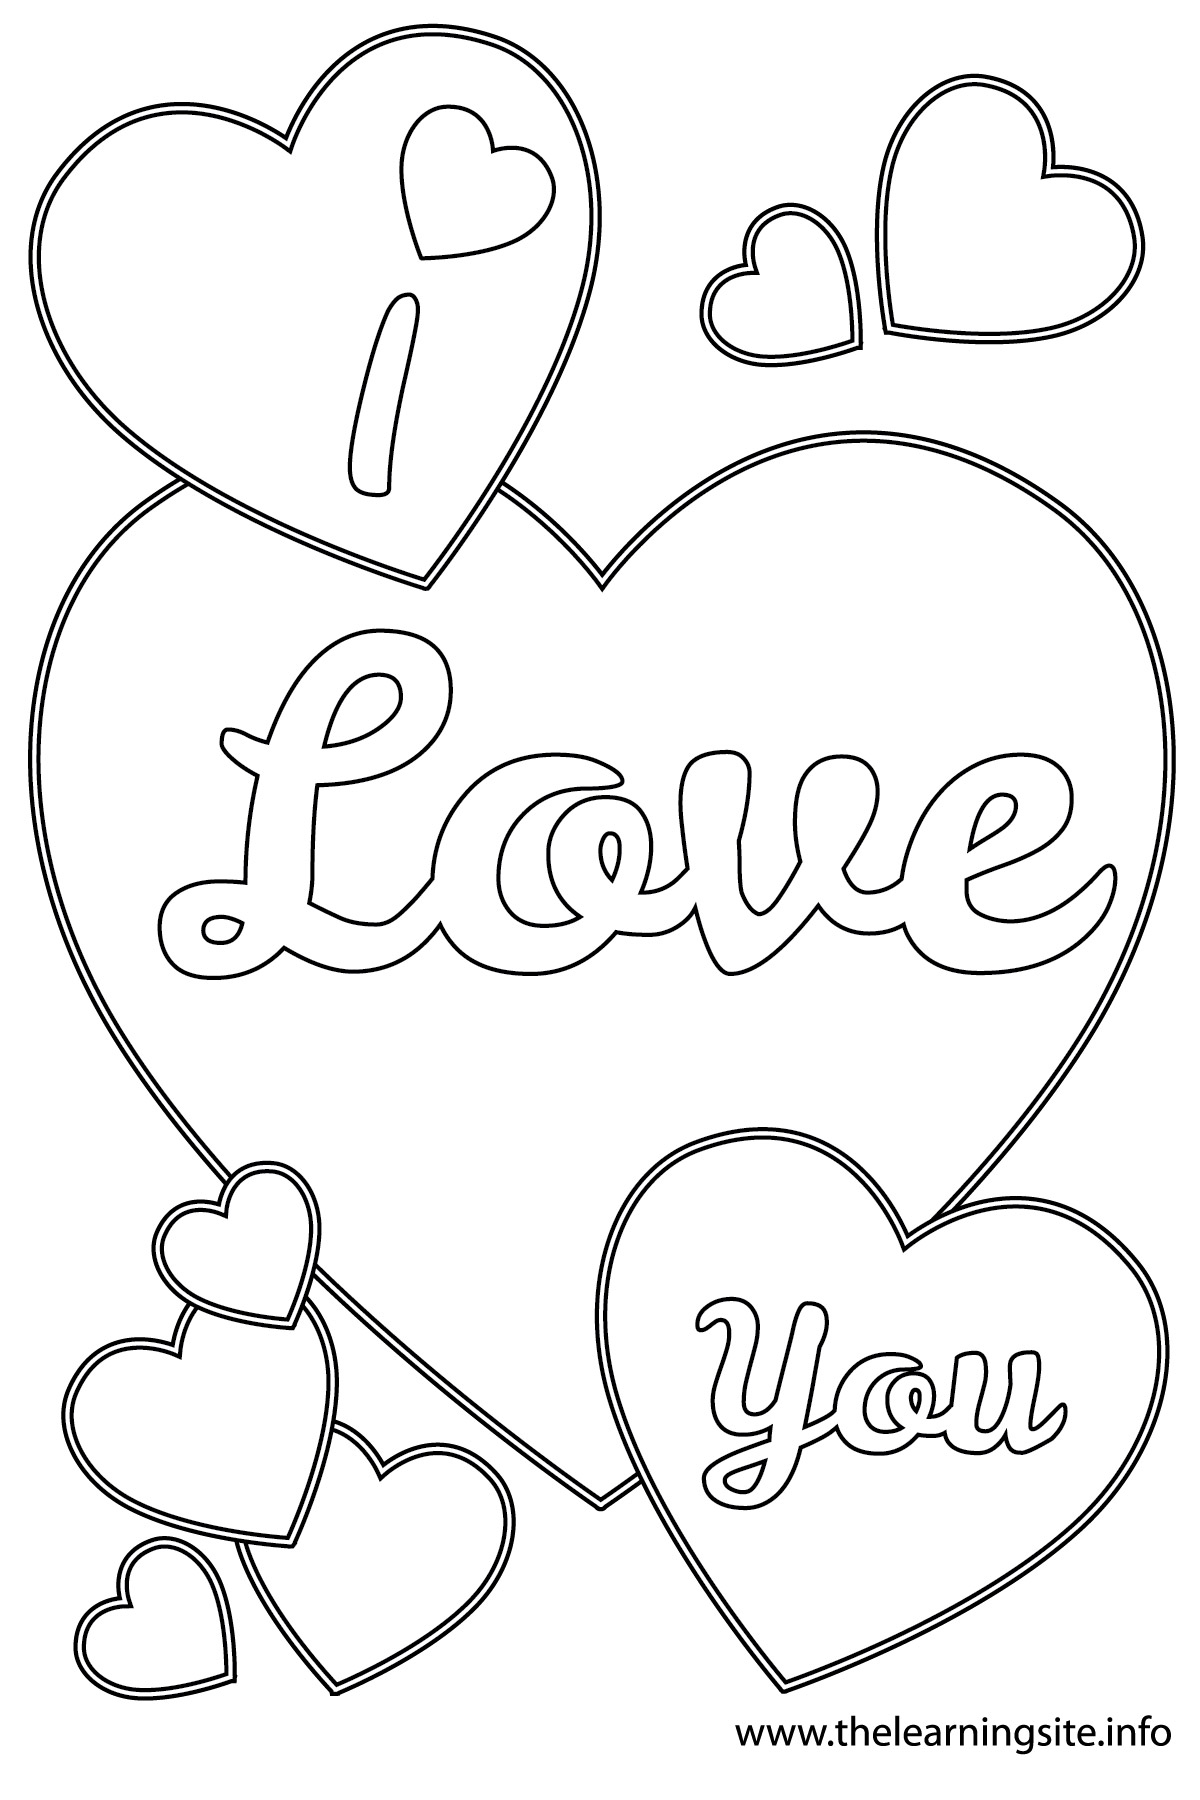 I Love You Coloring Pages To Download And Print For Free